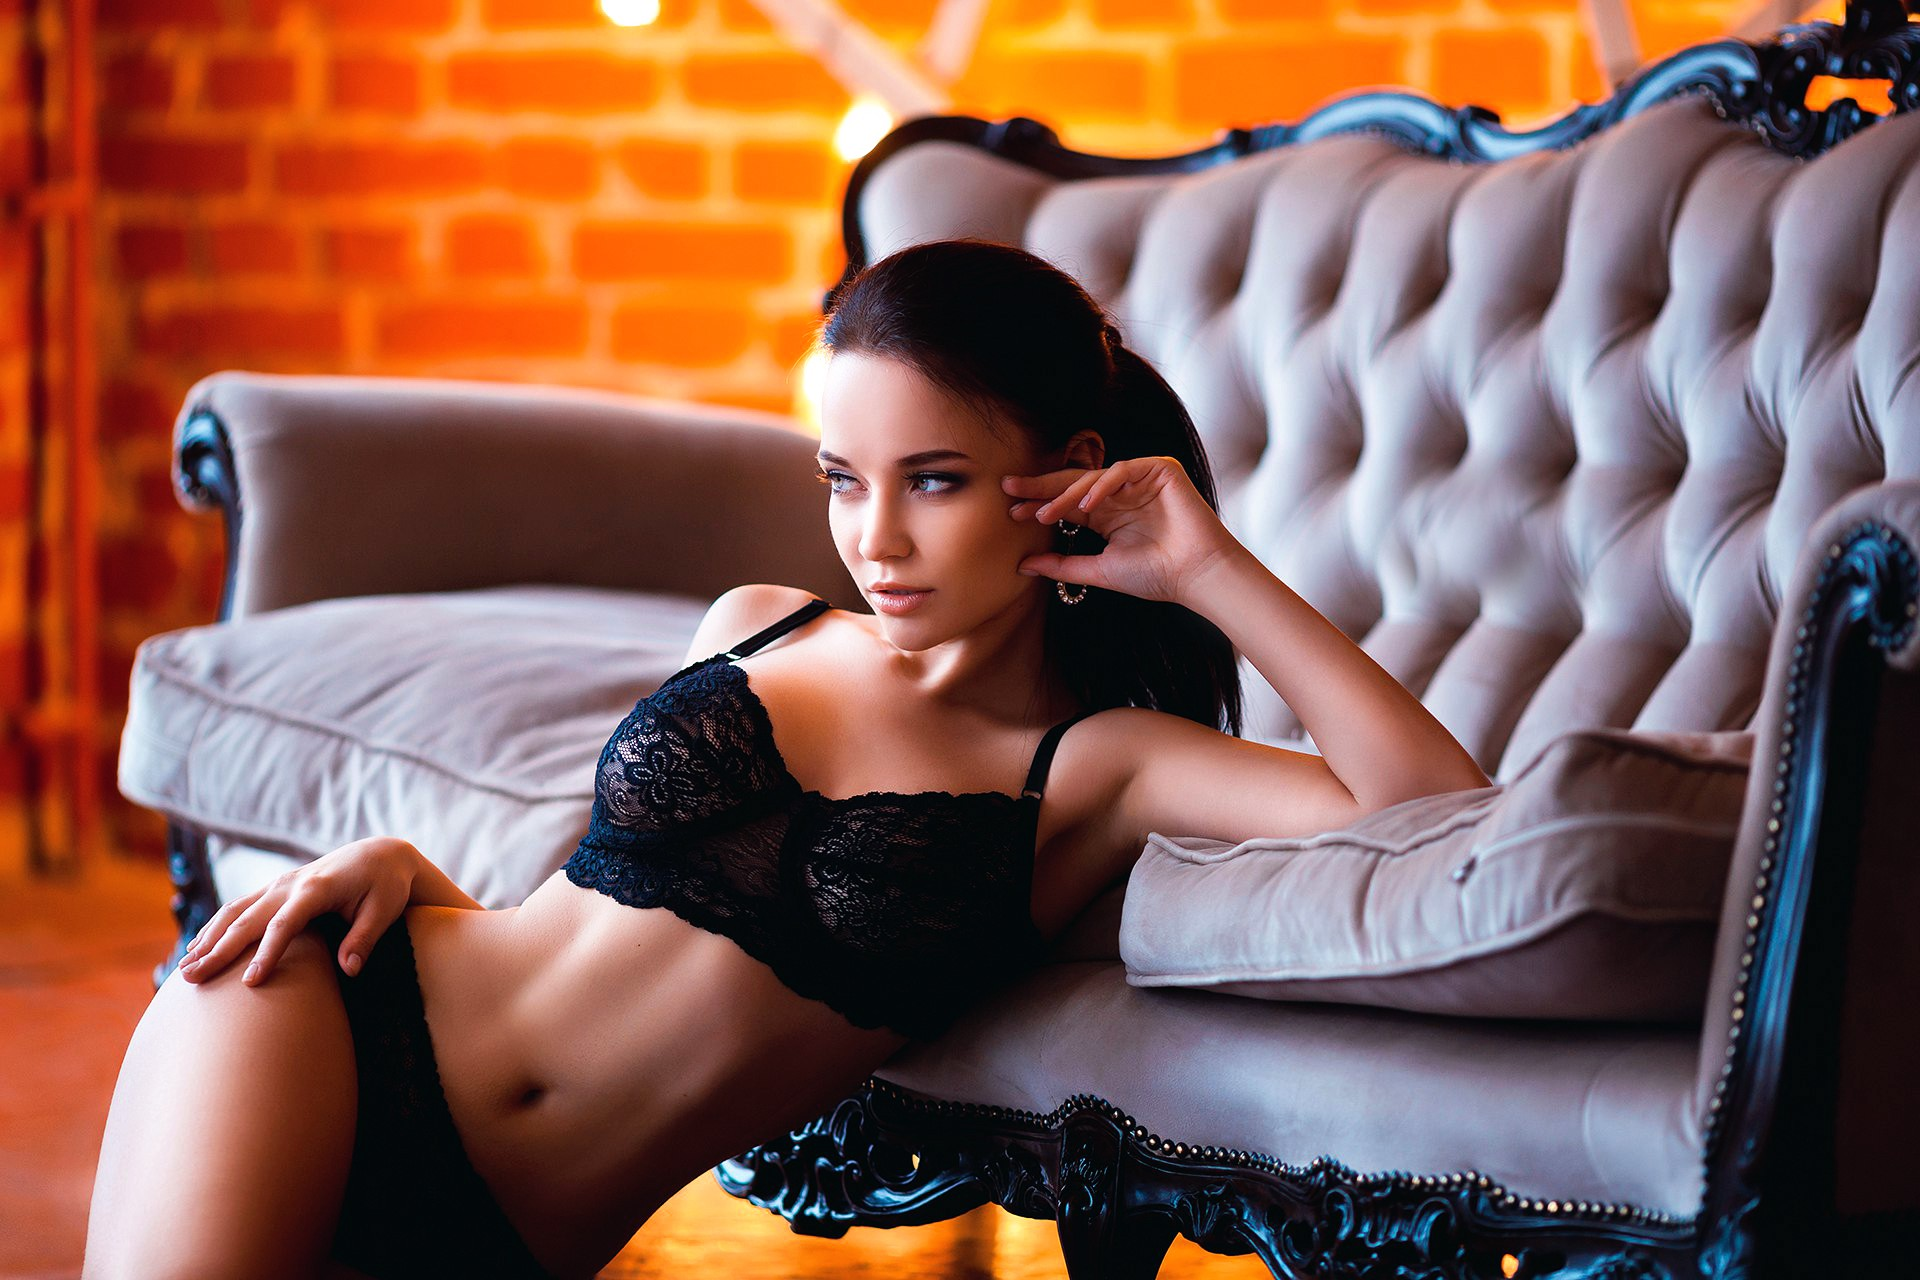 People 1920x1280 couch lingerie women model Angelina Petrova brunette black lingerie boobs panties bra black panties black bras hands on hips armpits looking away sensual gaze Marine Akopyan